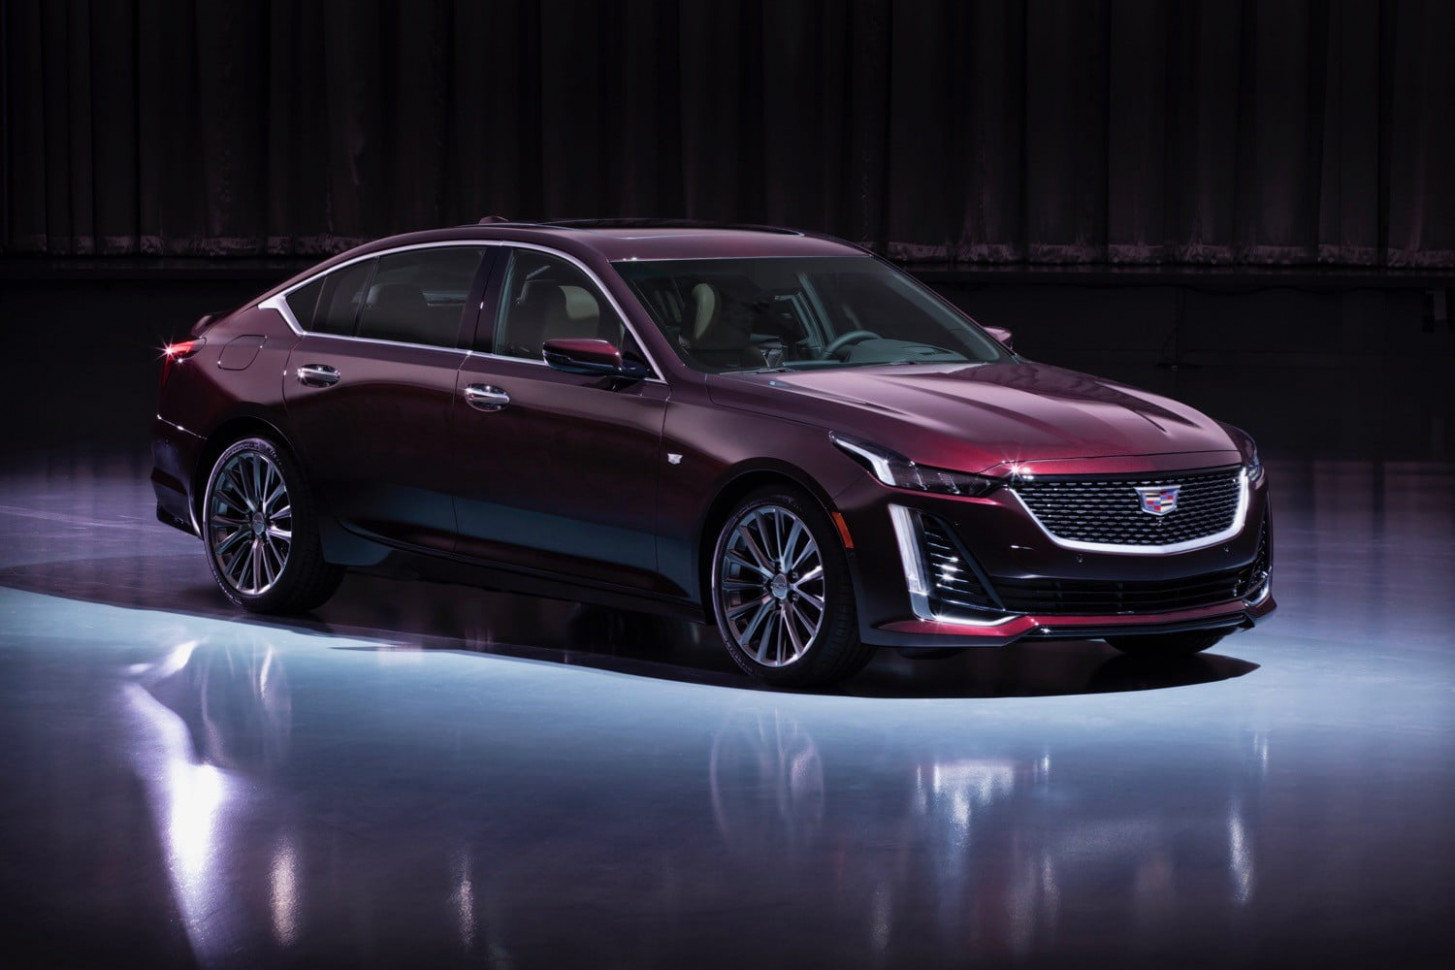 GM's New Digital Vehicle Platform Will Support More In-car Tech